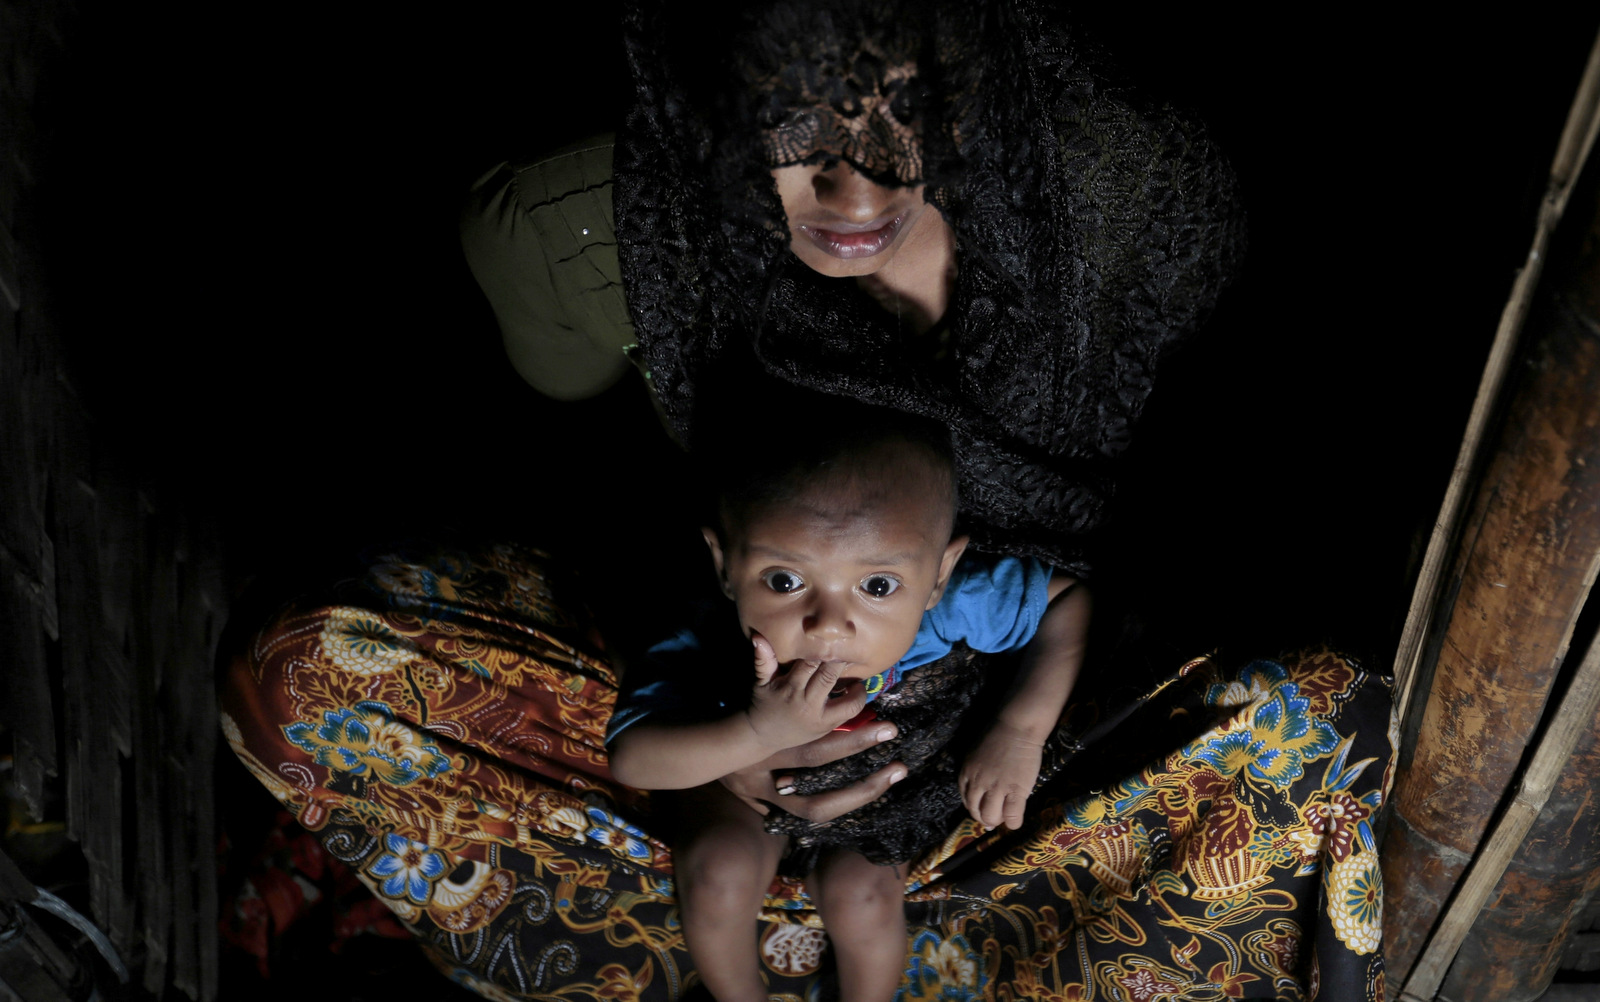 Mohsena Begum, a Rohingya who escaped to Bangladesh from Myanmar, holds her child and sits at the entrance of a room of an unregistered refugee camp in Teknaf, near Cox's Bazar, a southern coastal district about, 296 kilometers (183 miles) south of Dhaka, Bangladesh. Dec. 2, 2016. (AP Photo/A.M. Ahad)